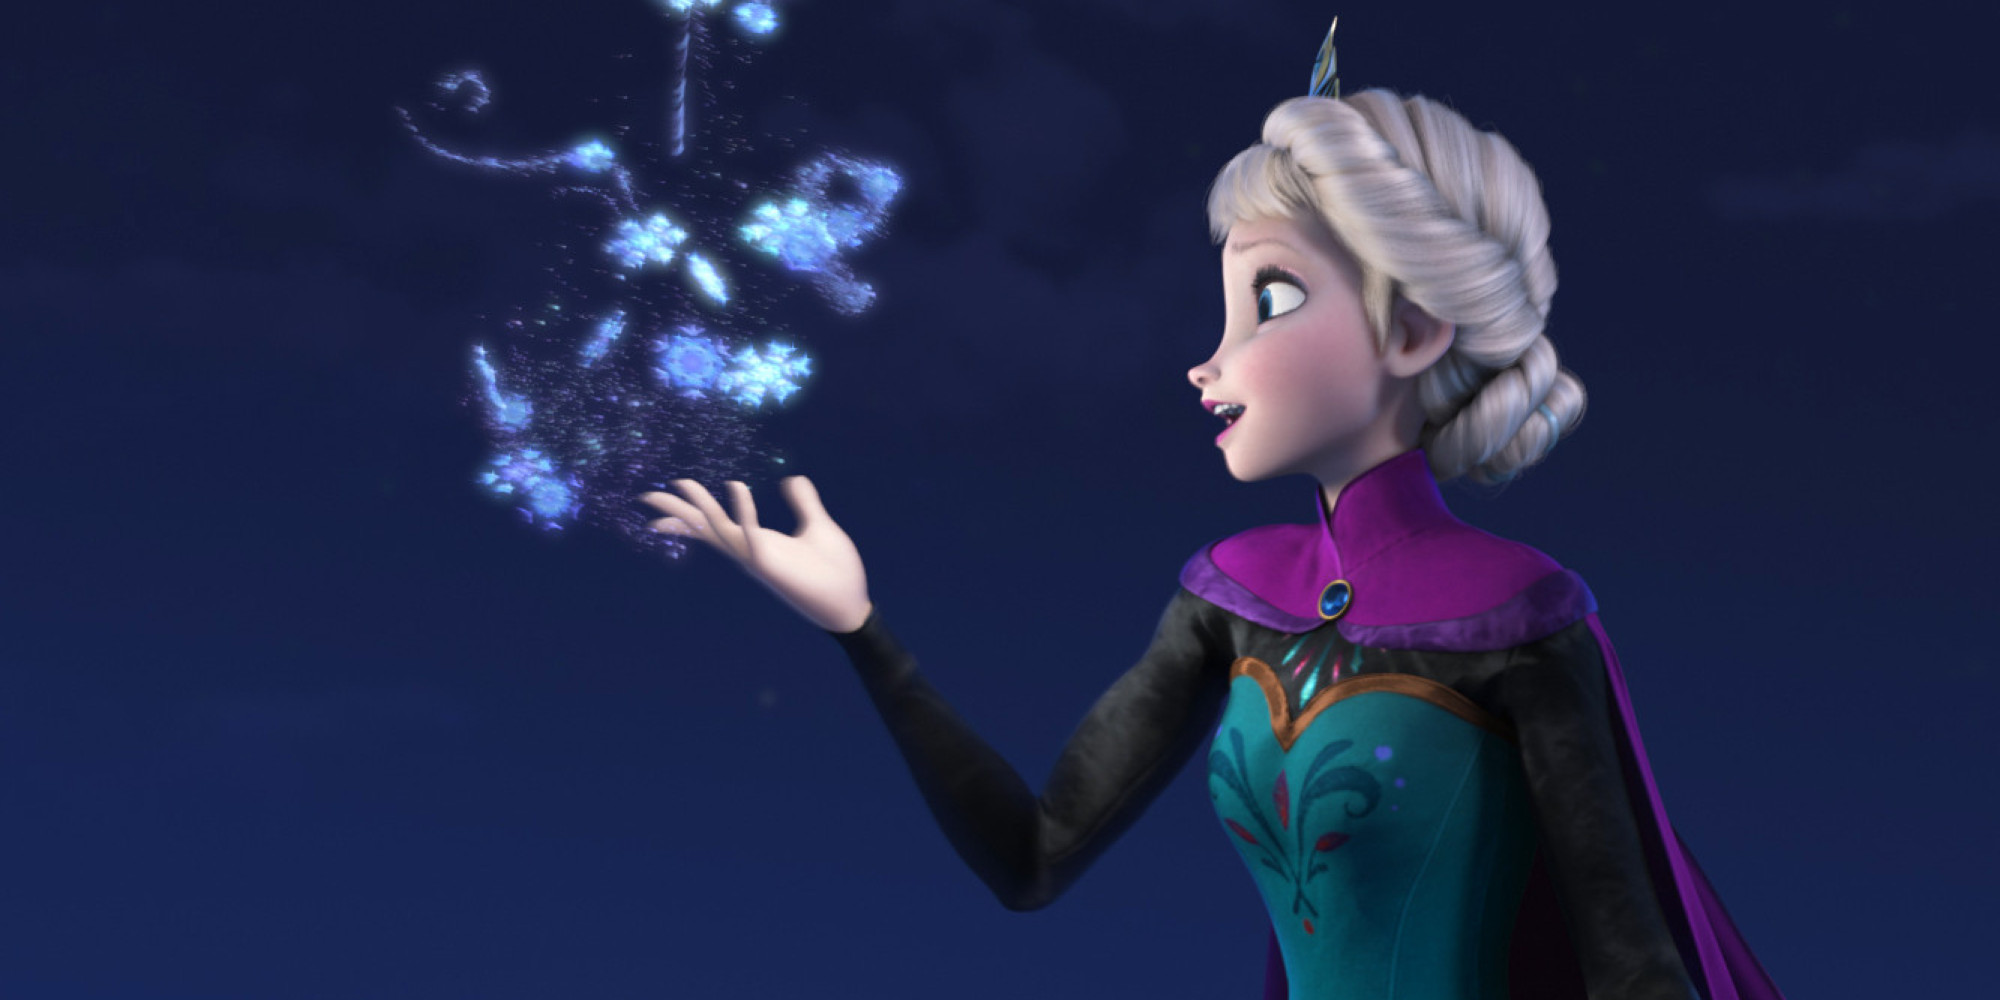 """This image released by Disney shows Elsa the Snow Queen, voiced by Idina Menzel, in a scene from the animated feature """"Frozen."""" Disney's animated adventure, """"Frozen,"""" took the No. 2 position, earning $28.9 million over the weekend and $248.4 million domestically after six weeks at the multiplex. """"'Frozen' probably had the best release date of the year because they positioned themselves to completely dominate the family film marketplace over the holidays,"""" said box-office analyst Paul Dergarabedian of Rentrak. """"To be No. 2 in its sixth week is a total reflection of that."""" (AP Photo/Disney,File)"""